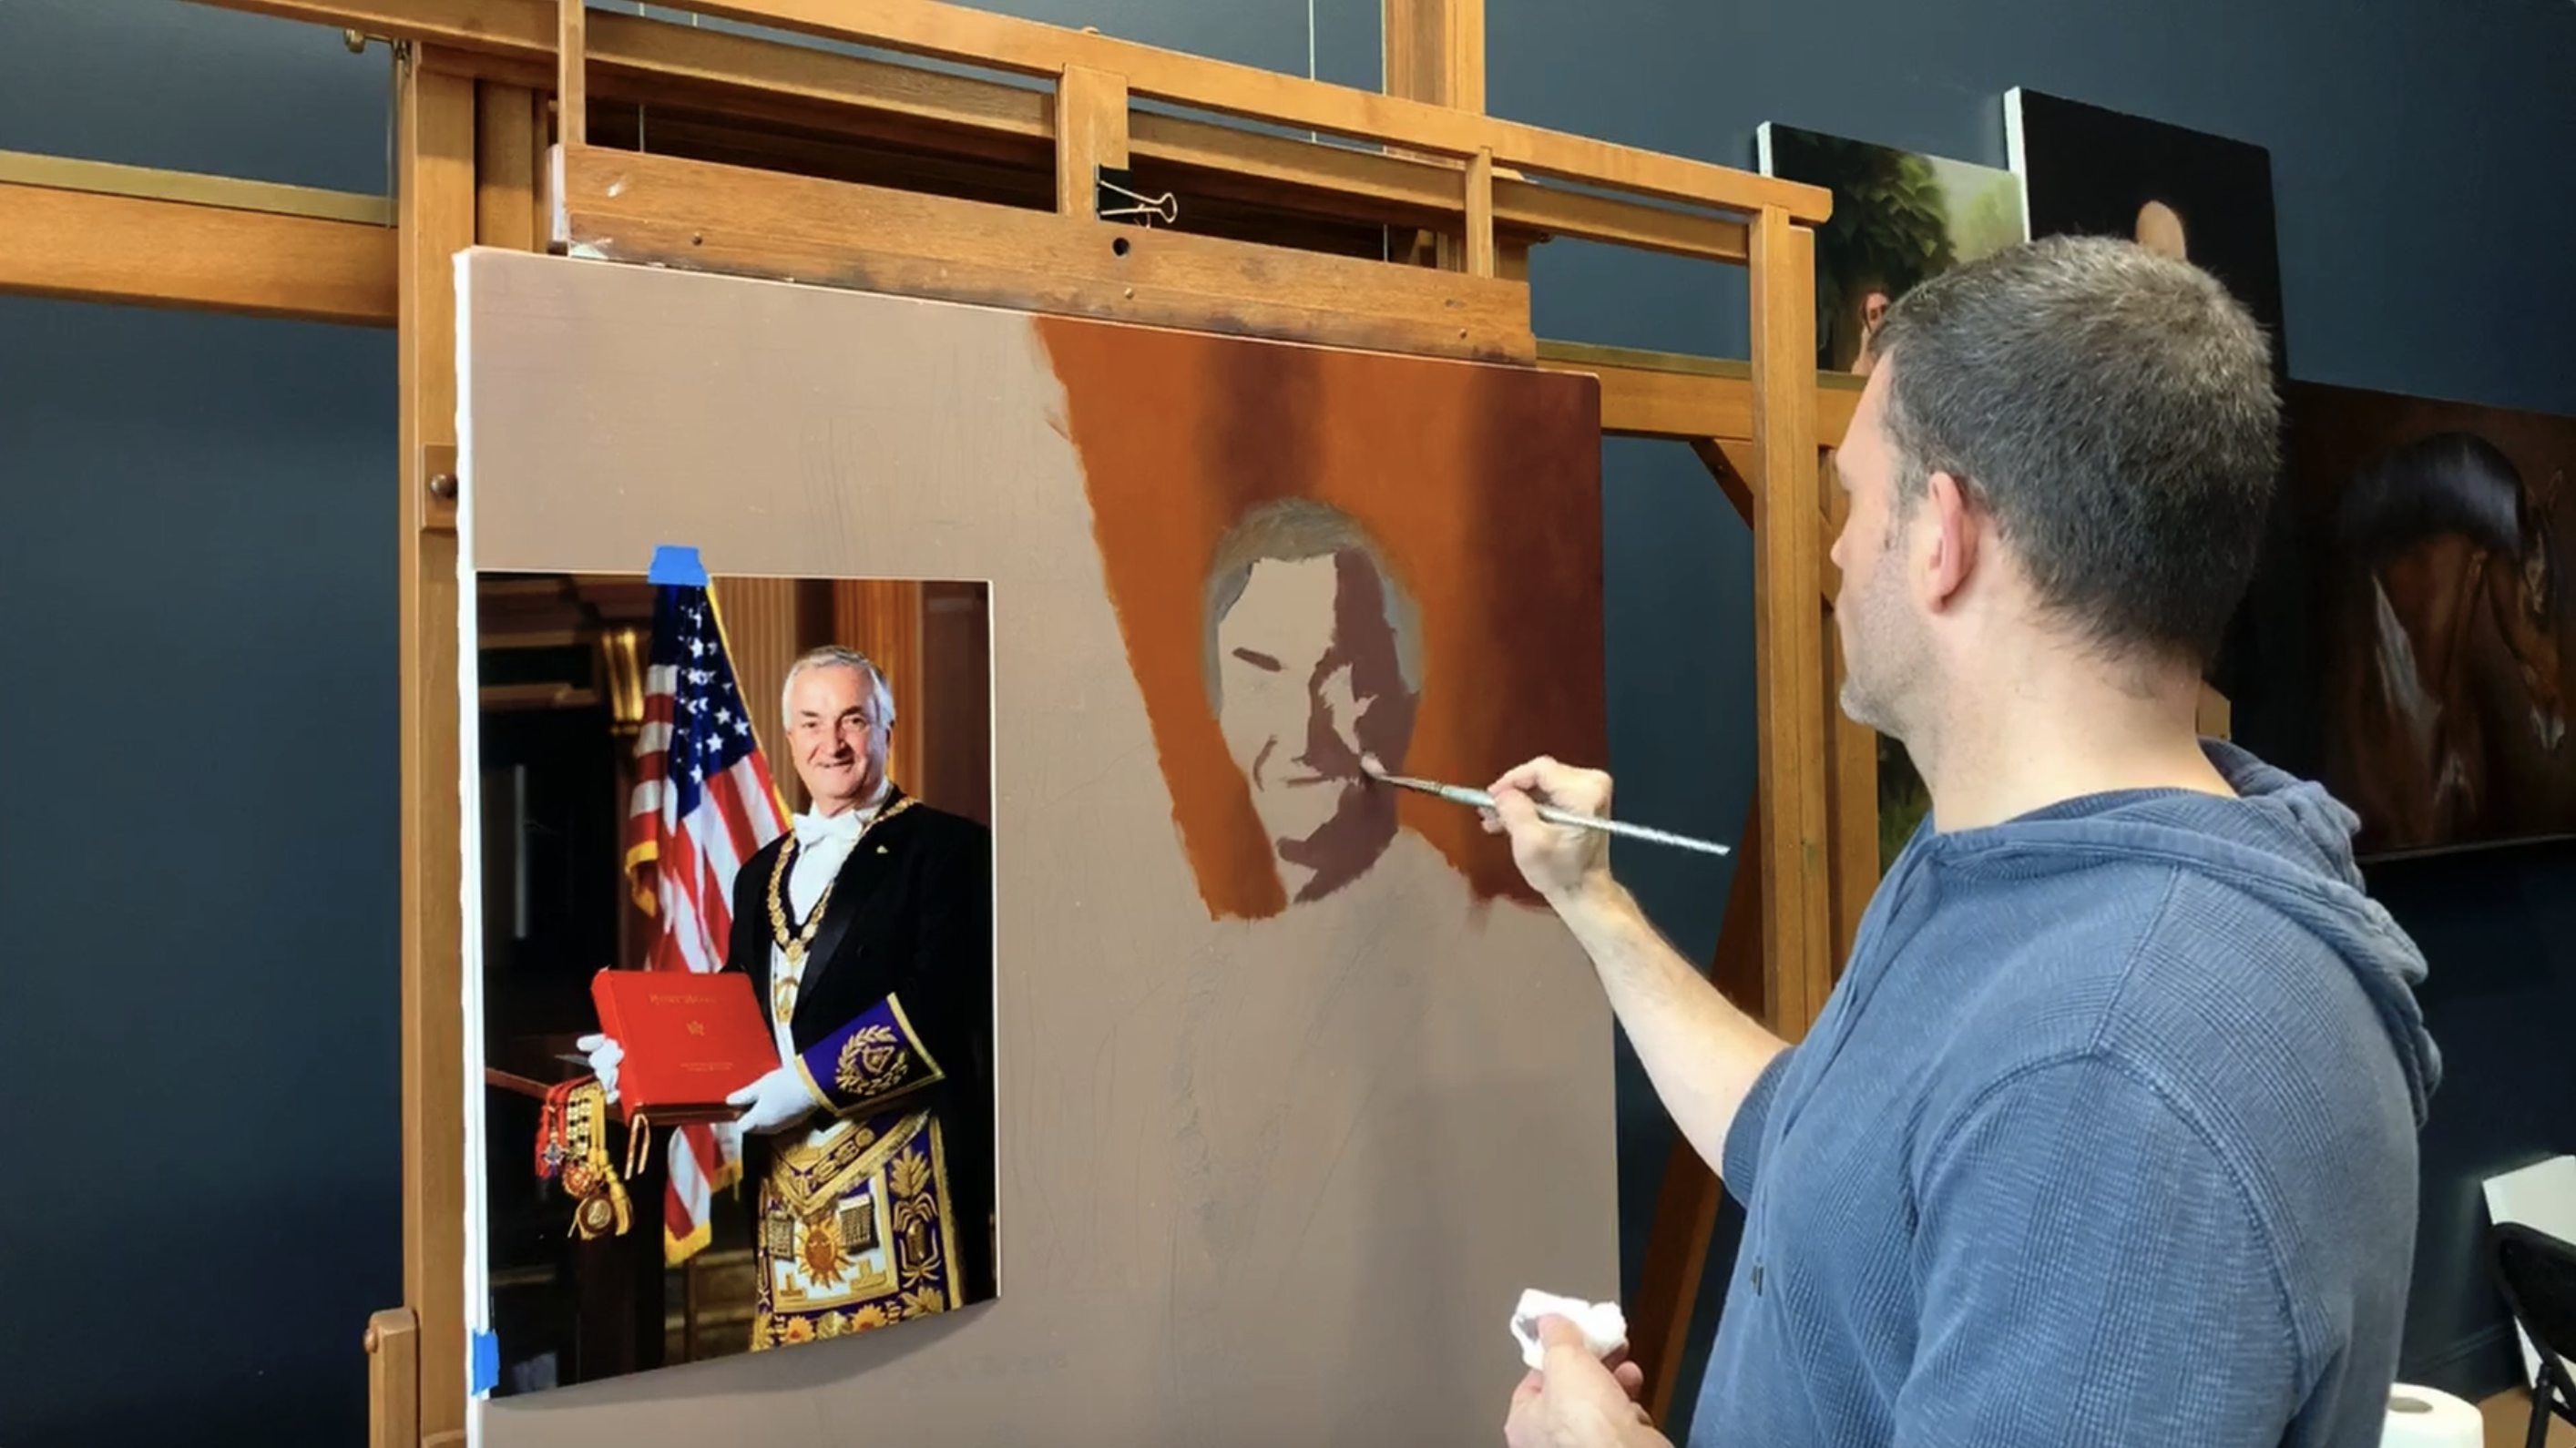 At the start of his portrait painting, Evolve Founder Kevin Murphy begins with one shadow shade and one light shade.